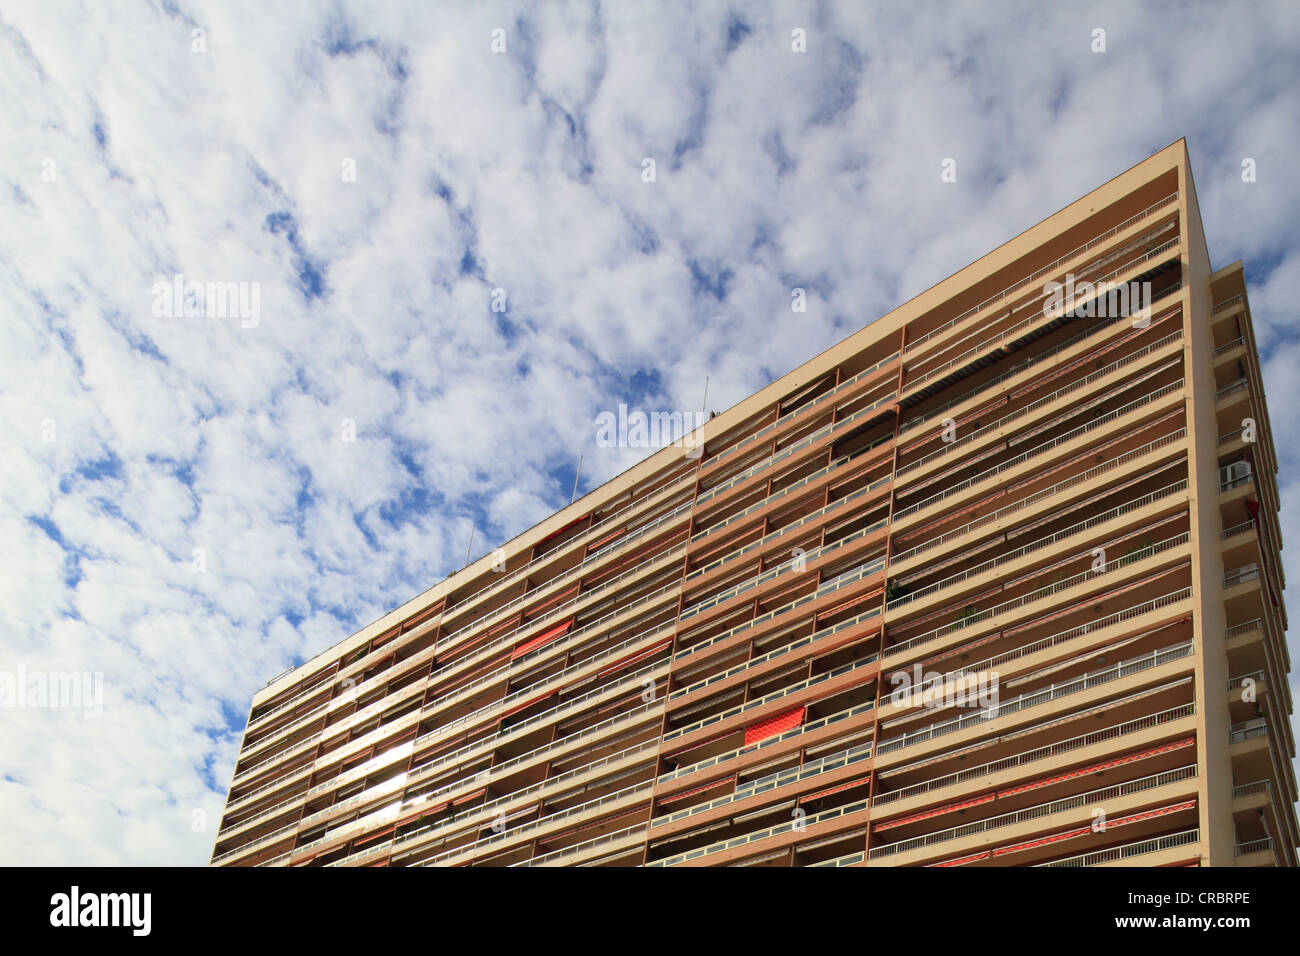 High-rise building against fluffy clouds, Larvotto quarter, Principality of Monaco, Cote d'Azur, Europe - Stock Image